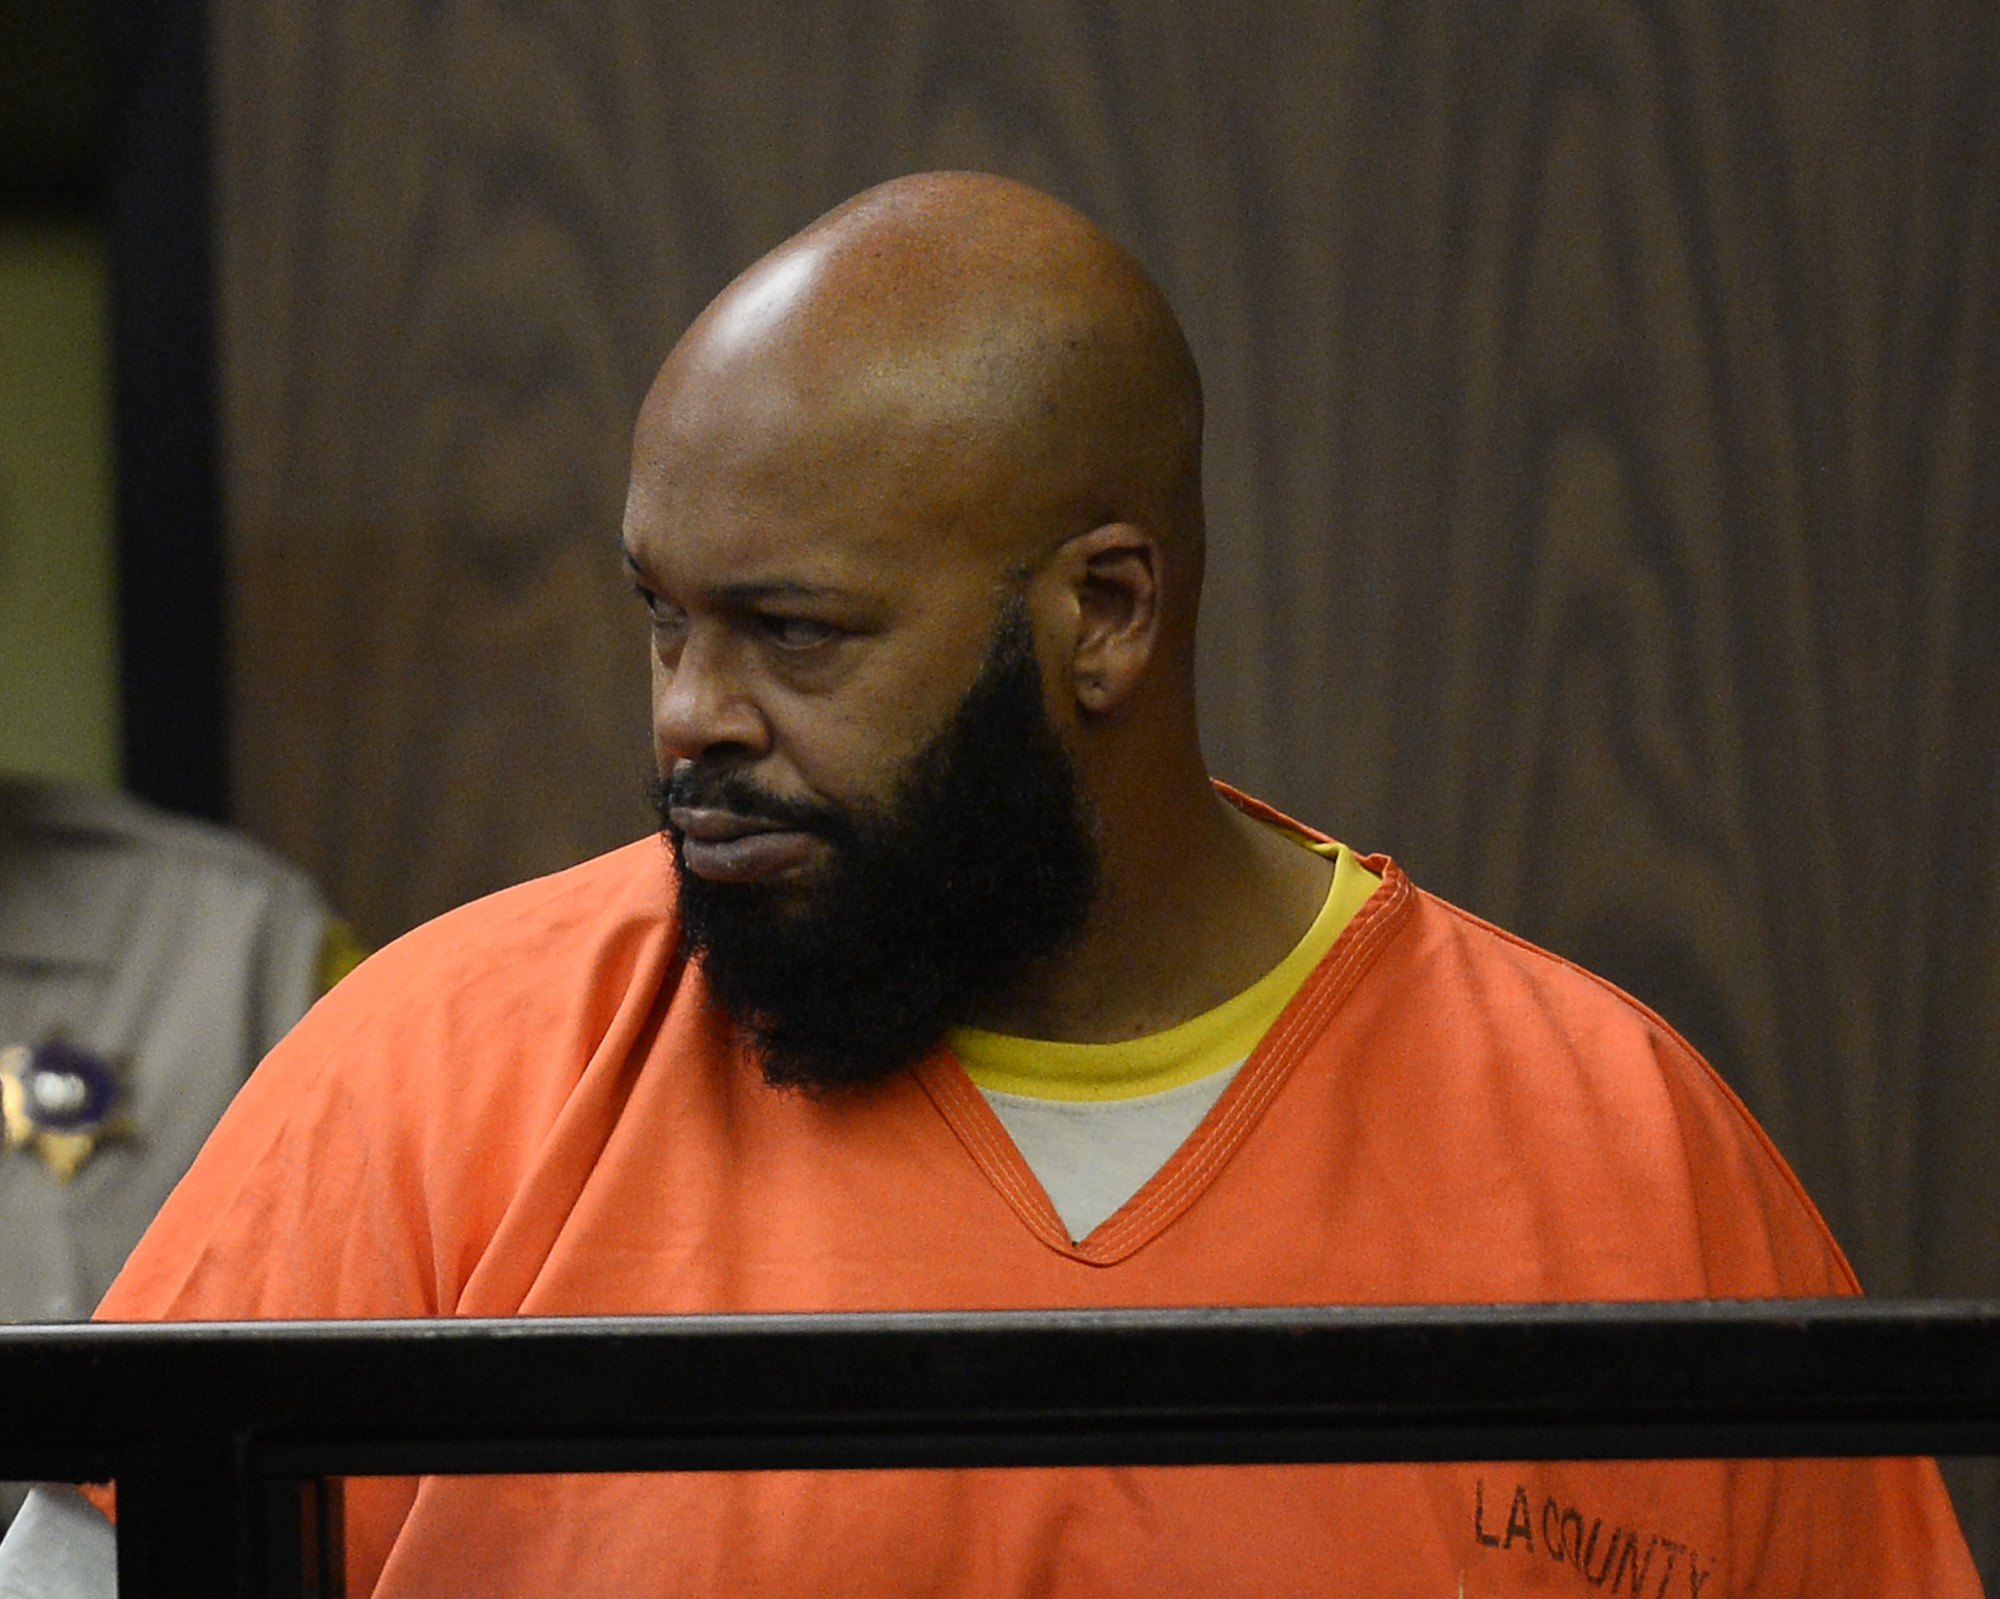 Marion  Suge  Knight appears in a court during his arraignment, Tuesday, Feb. 3, 2015 in Compton, Calif.